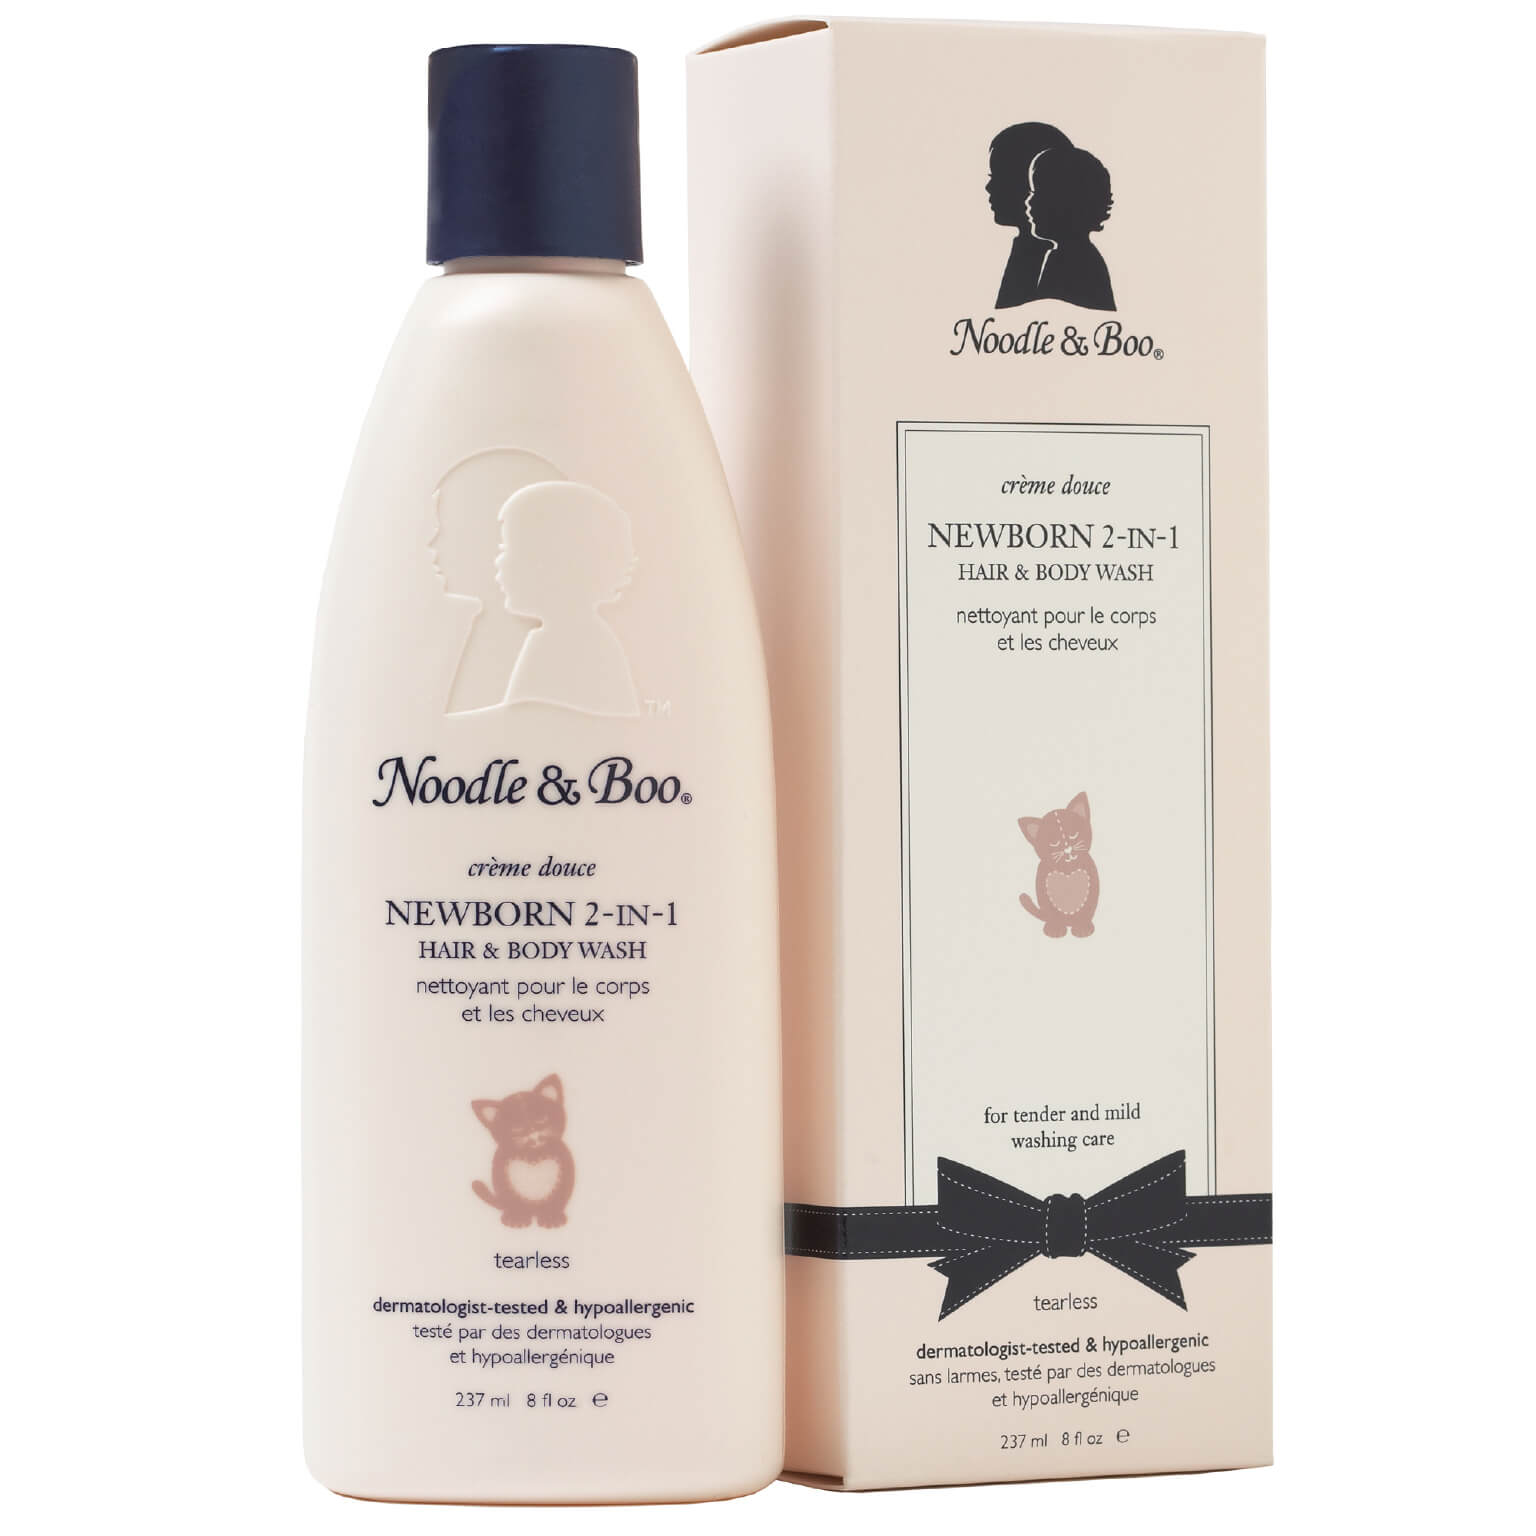 https://www.noodleandbooturkiye.com/media/uploads/options/files/Newborn 2-in-1 Hair & Body Wash 237 ml15750213861846F33jc.jpeg